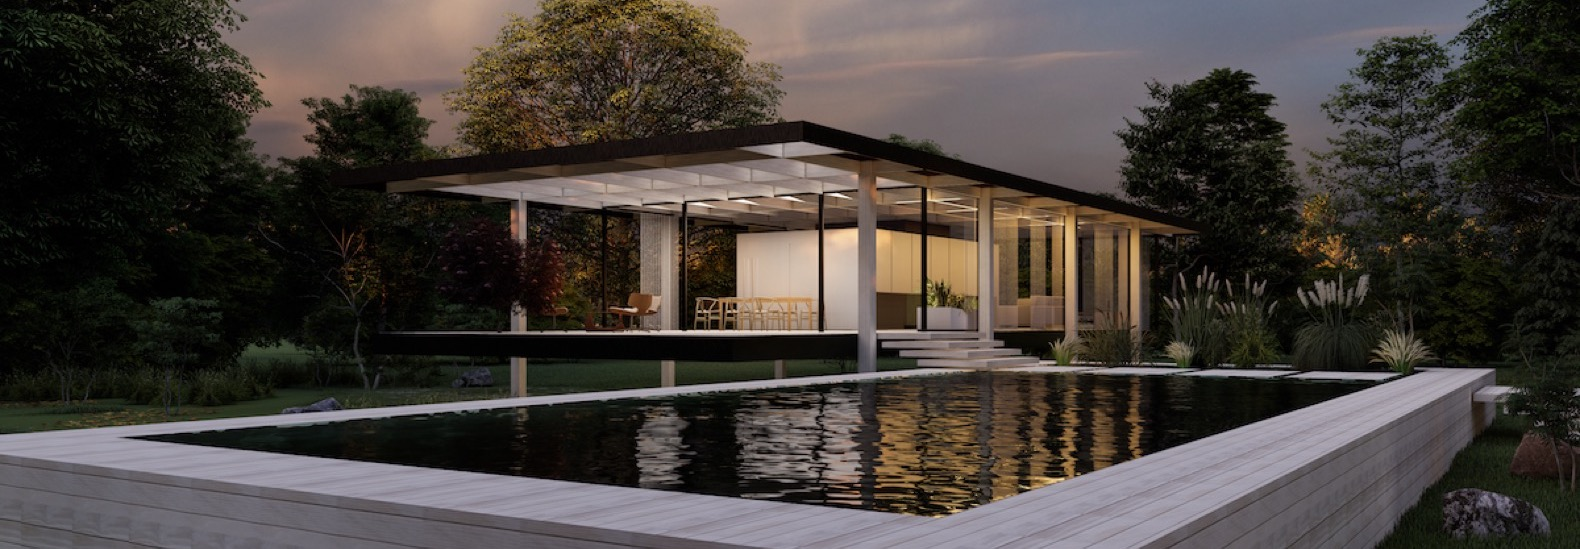 Iconic Farnsworth House gets a conceptual, sustainable redesign